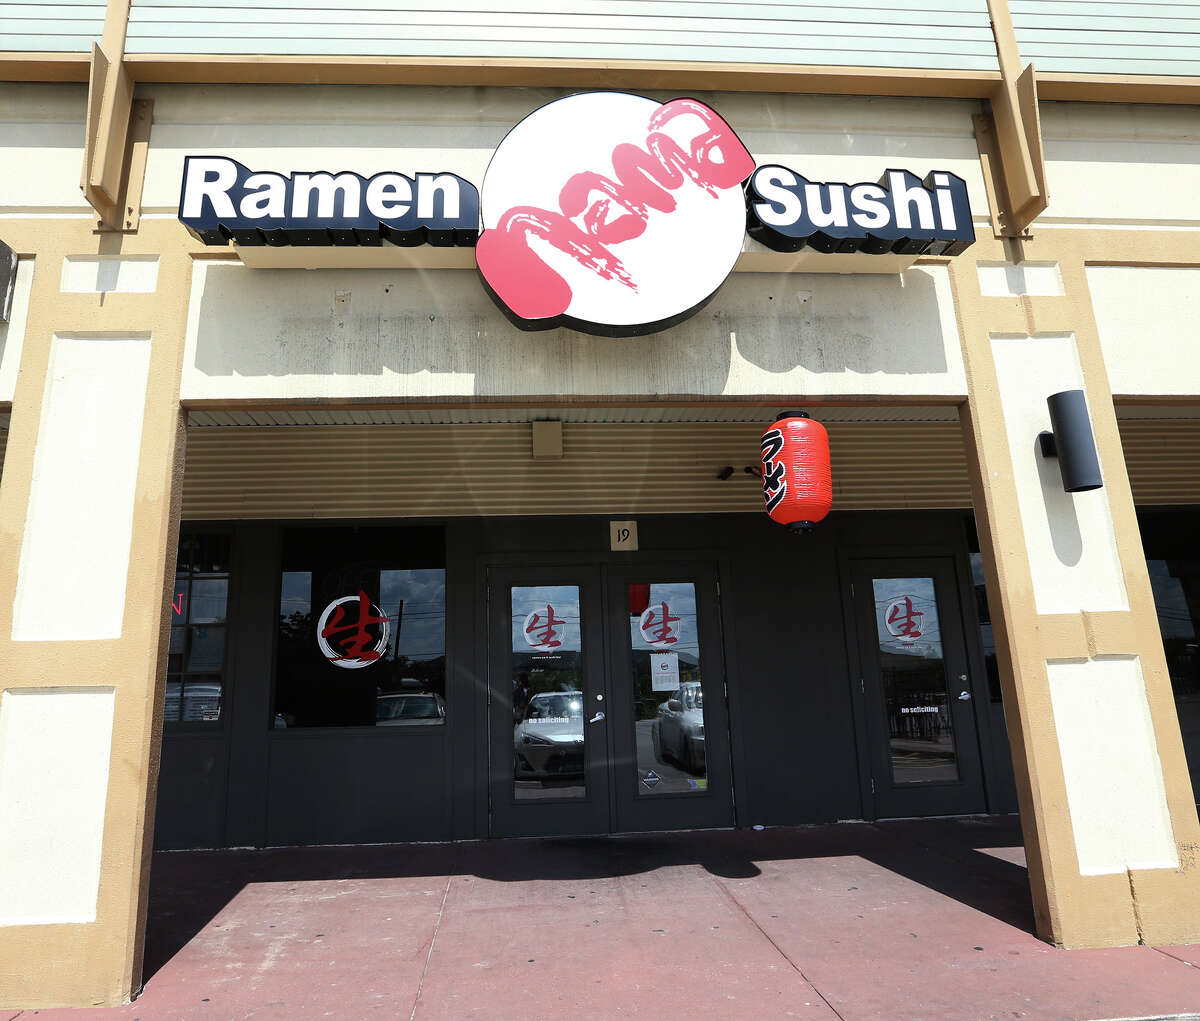 Nama Ramen is located at 6565 Babcock Road. The restaurant is offering deals on sushi platters.